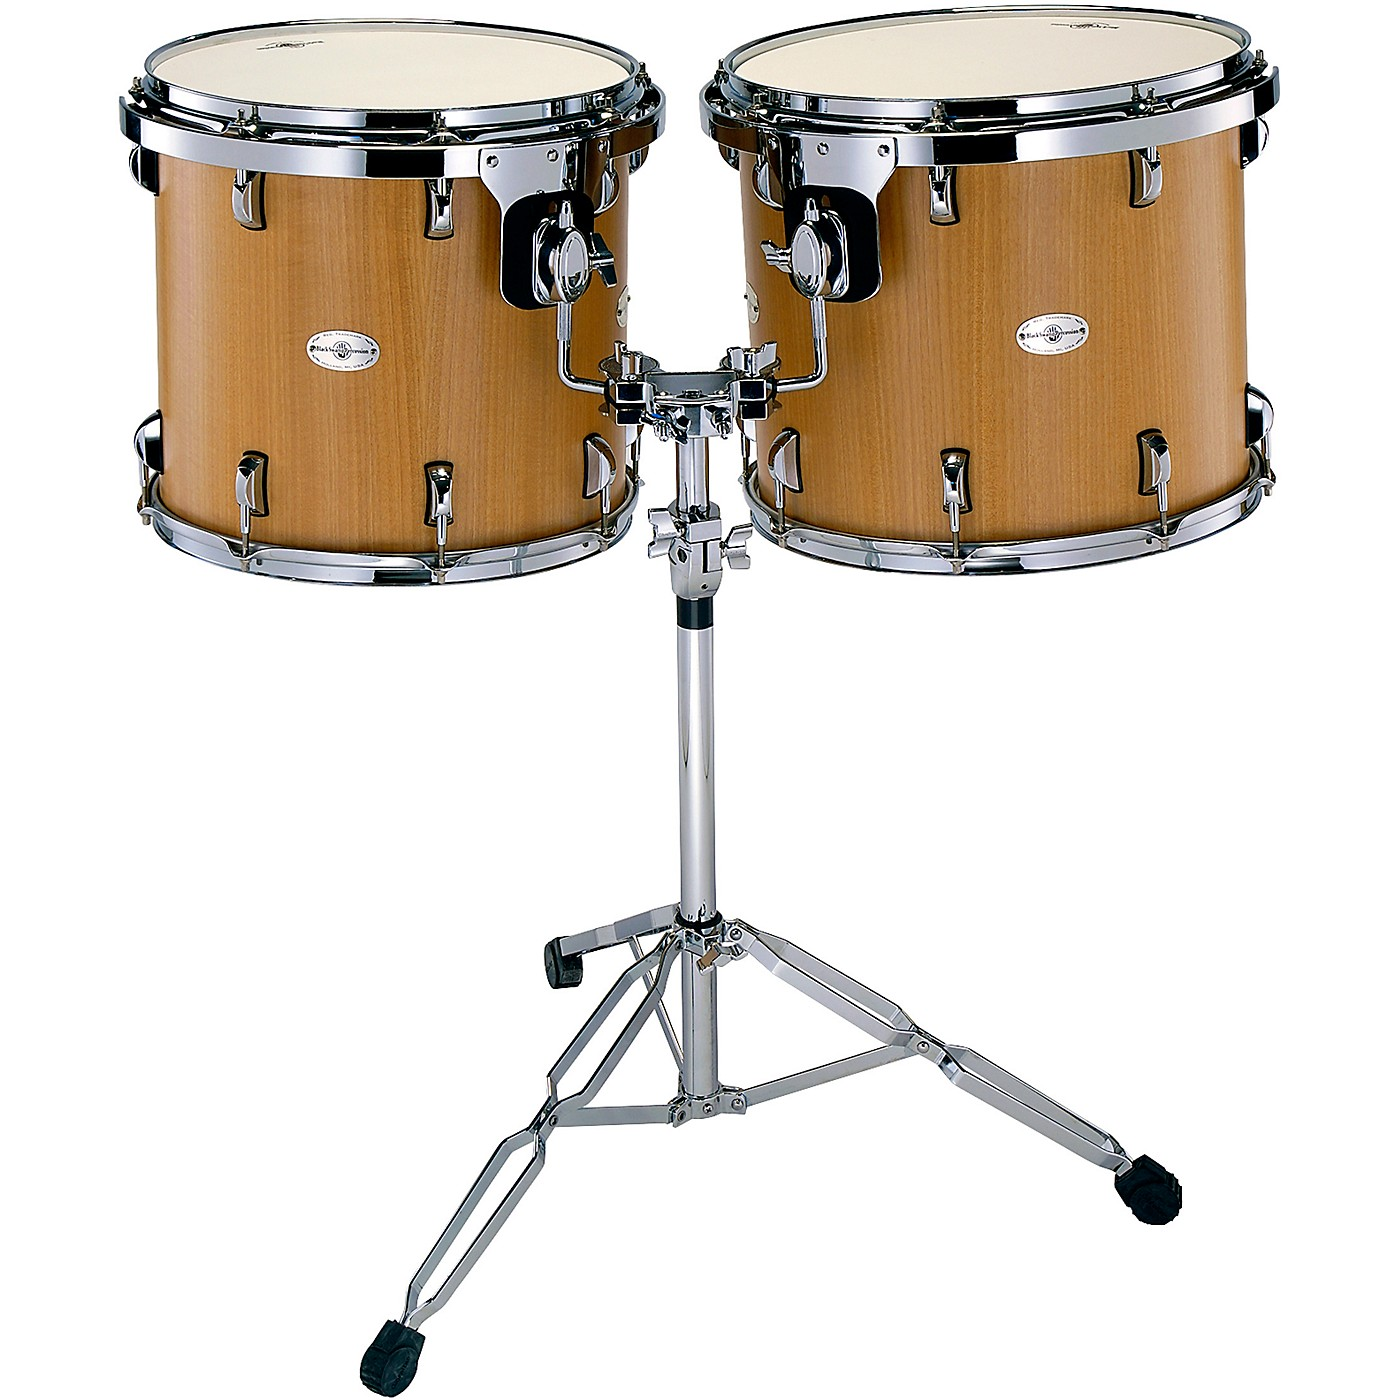 Black Swamp Percussion Figured Anigre Concert Tom Set with Stand thumbnail